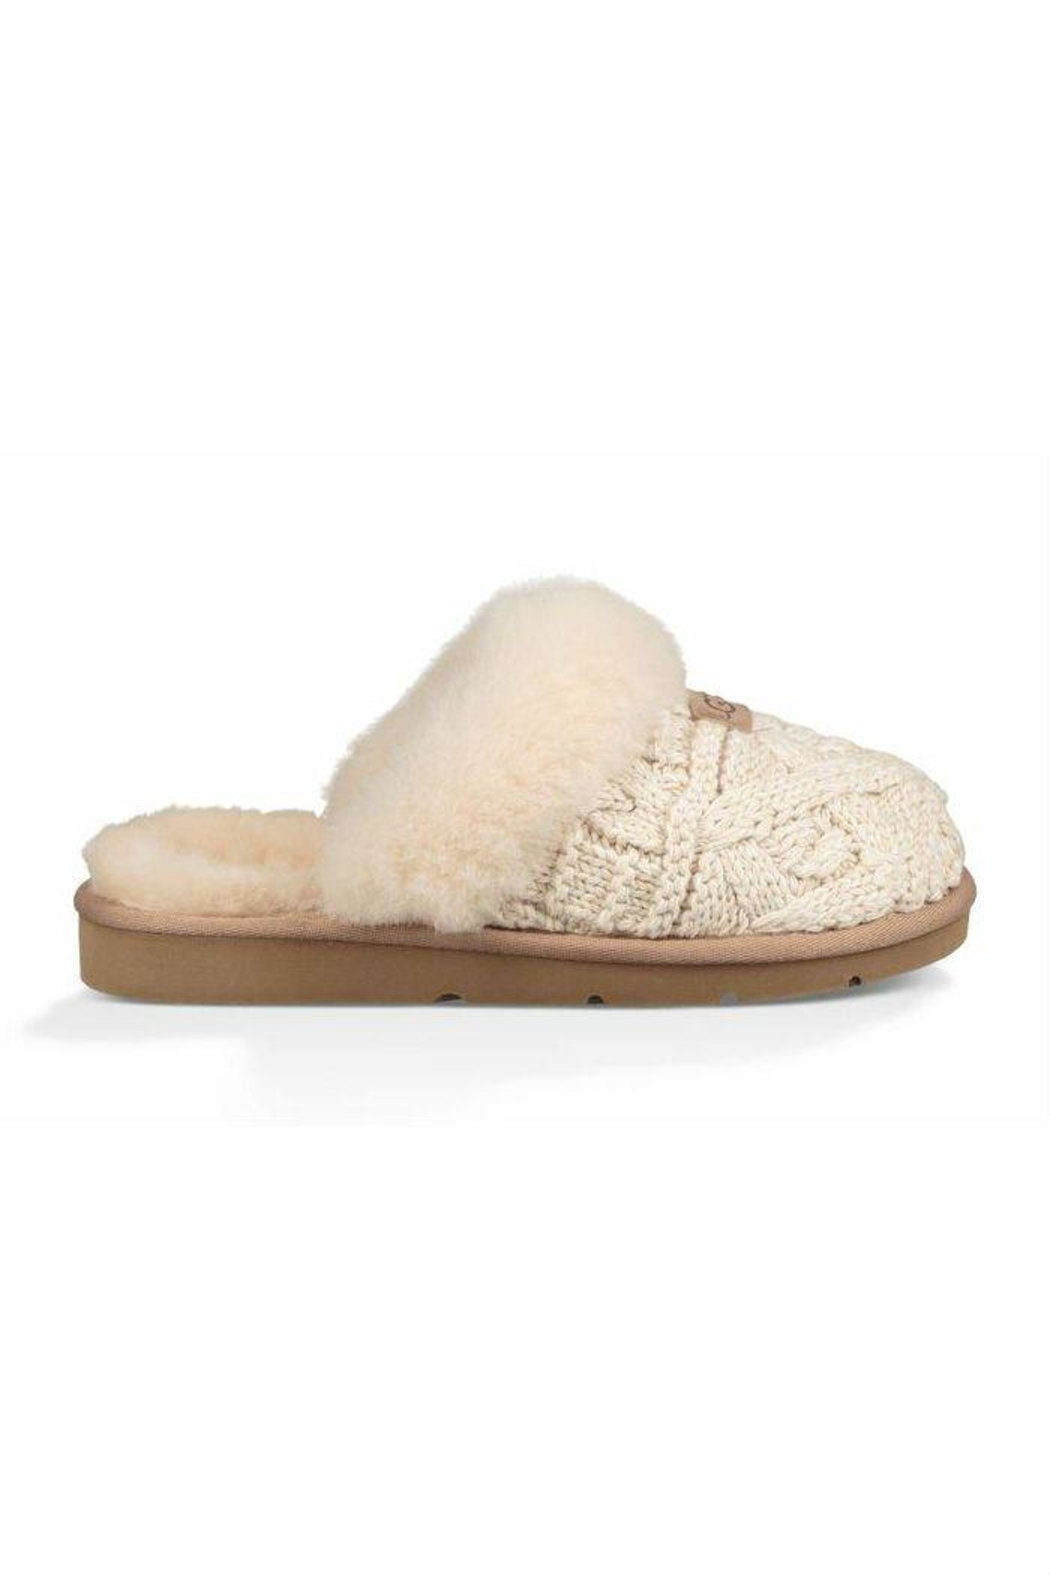 Ugg Australia Cozy Cable Knit Slippers From Montreal By Boutique Tag